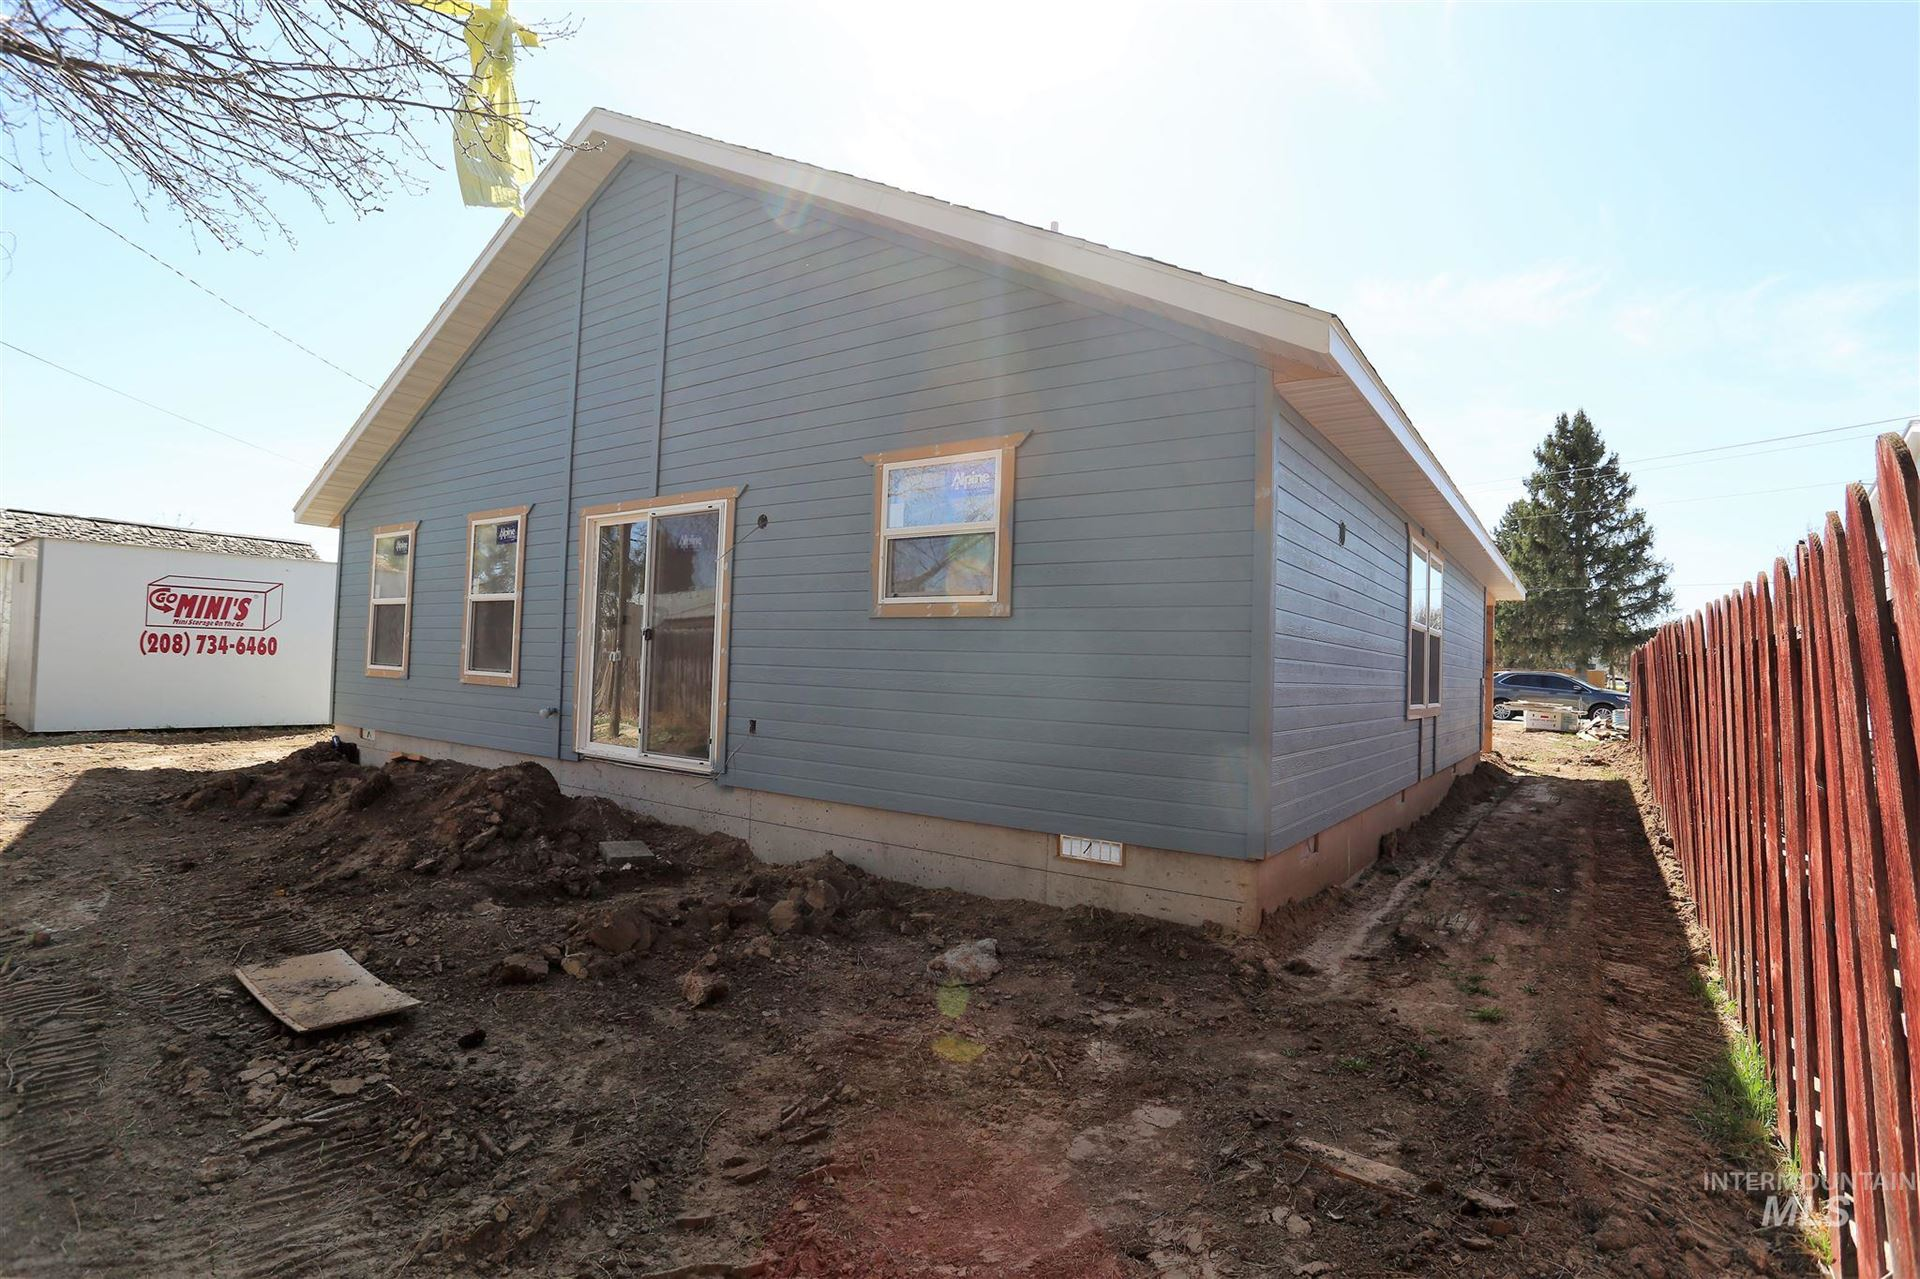 Photo of 600 E 10th Ave, Jerome, ID 83338 (MLS # 98798876)